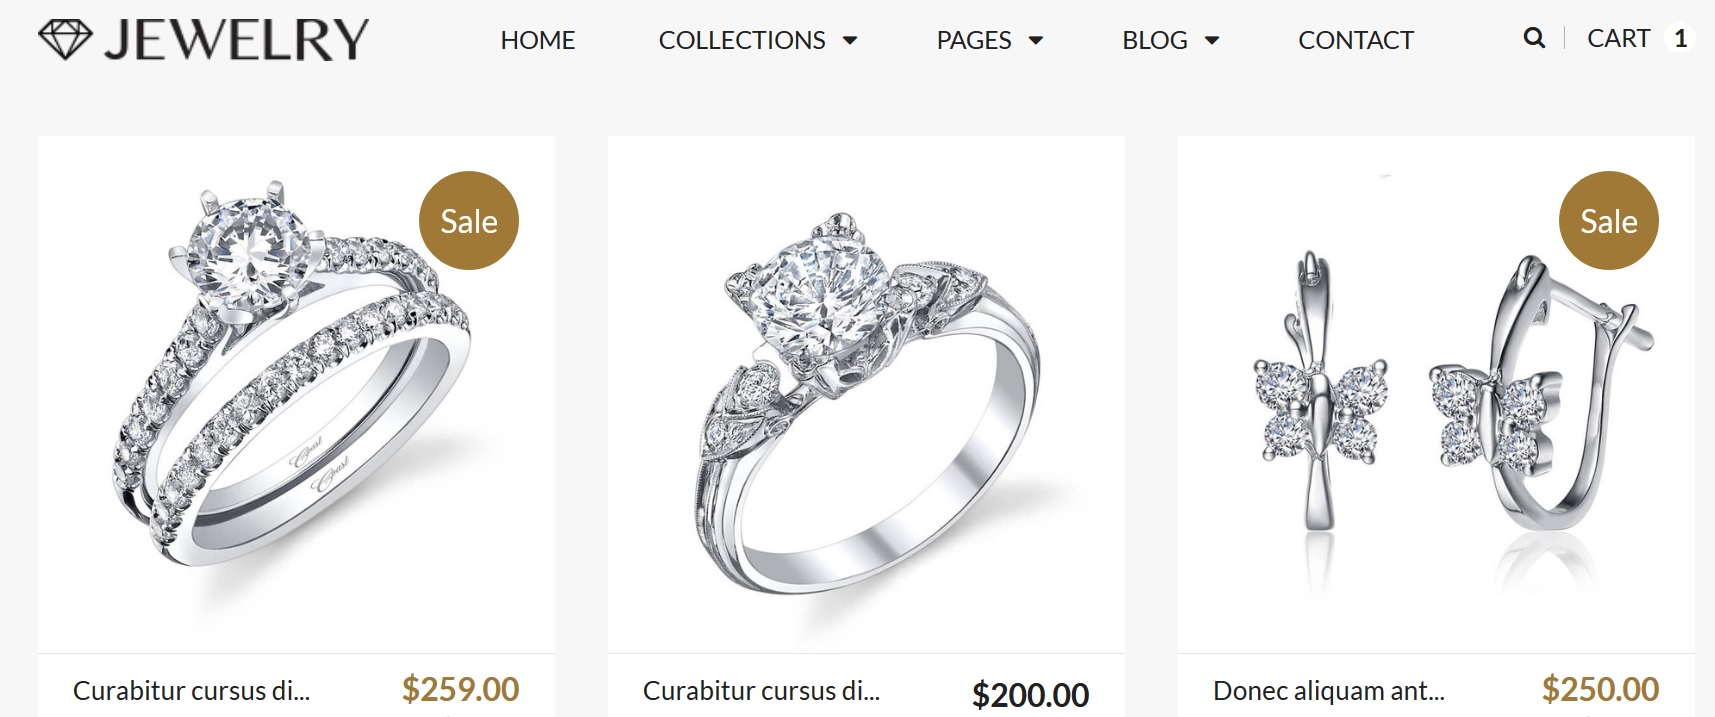 jewelry ecommerce web store design